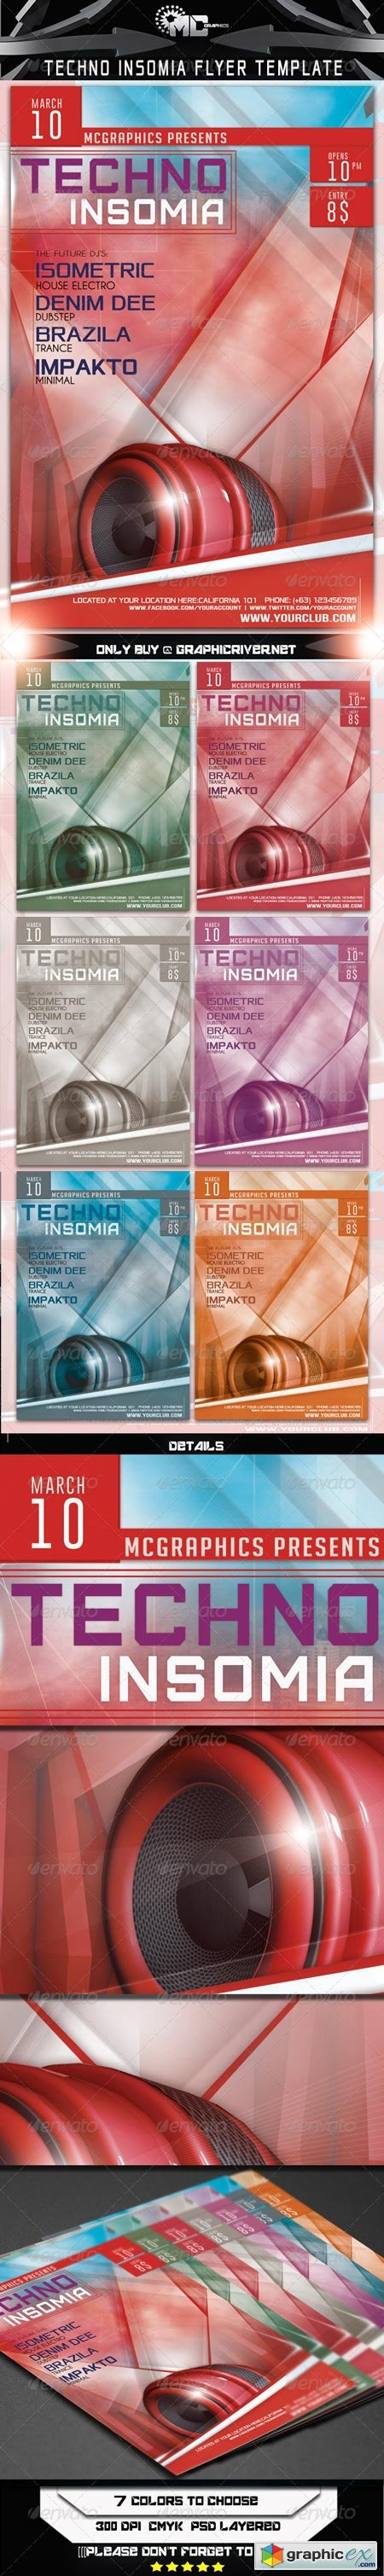 Techno Insomia Flyer Template 6897591